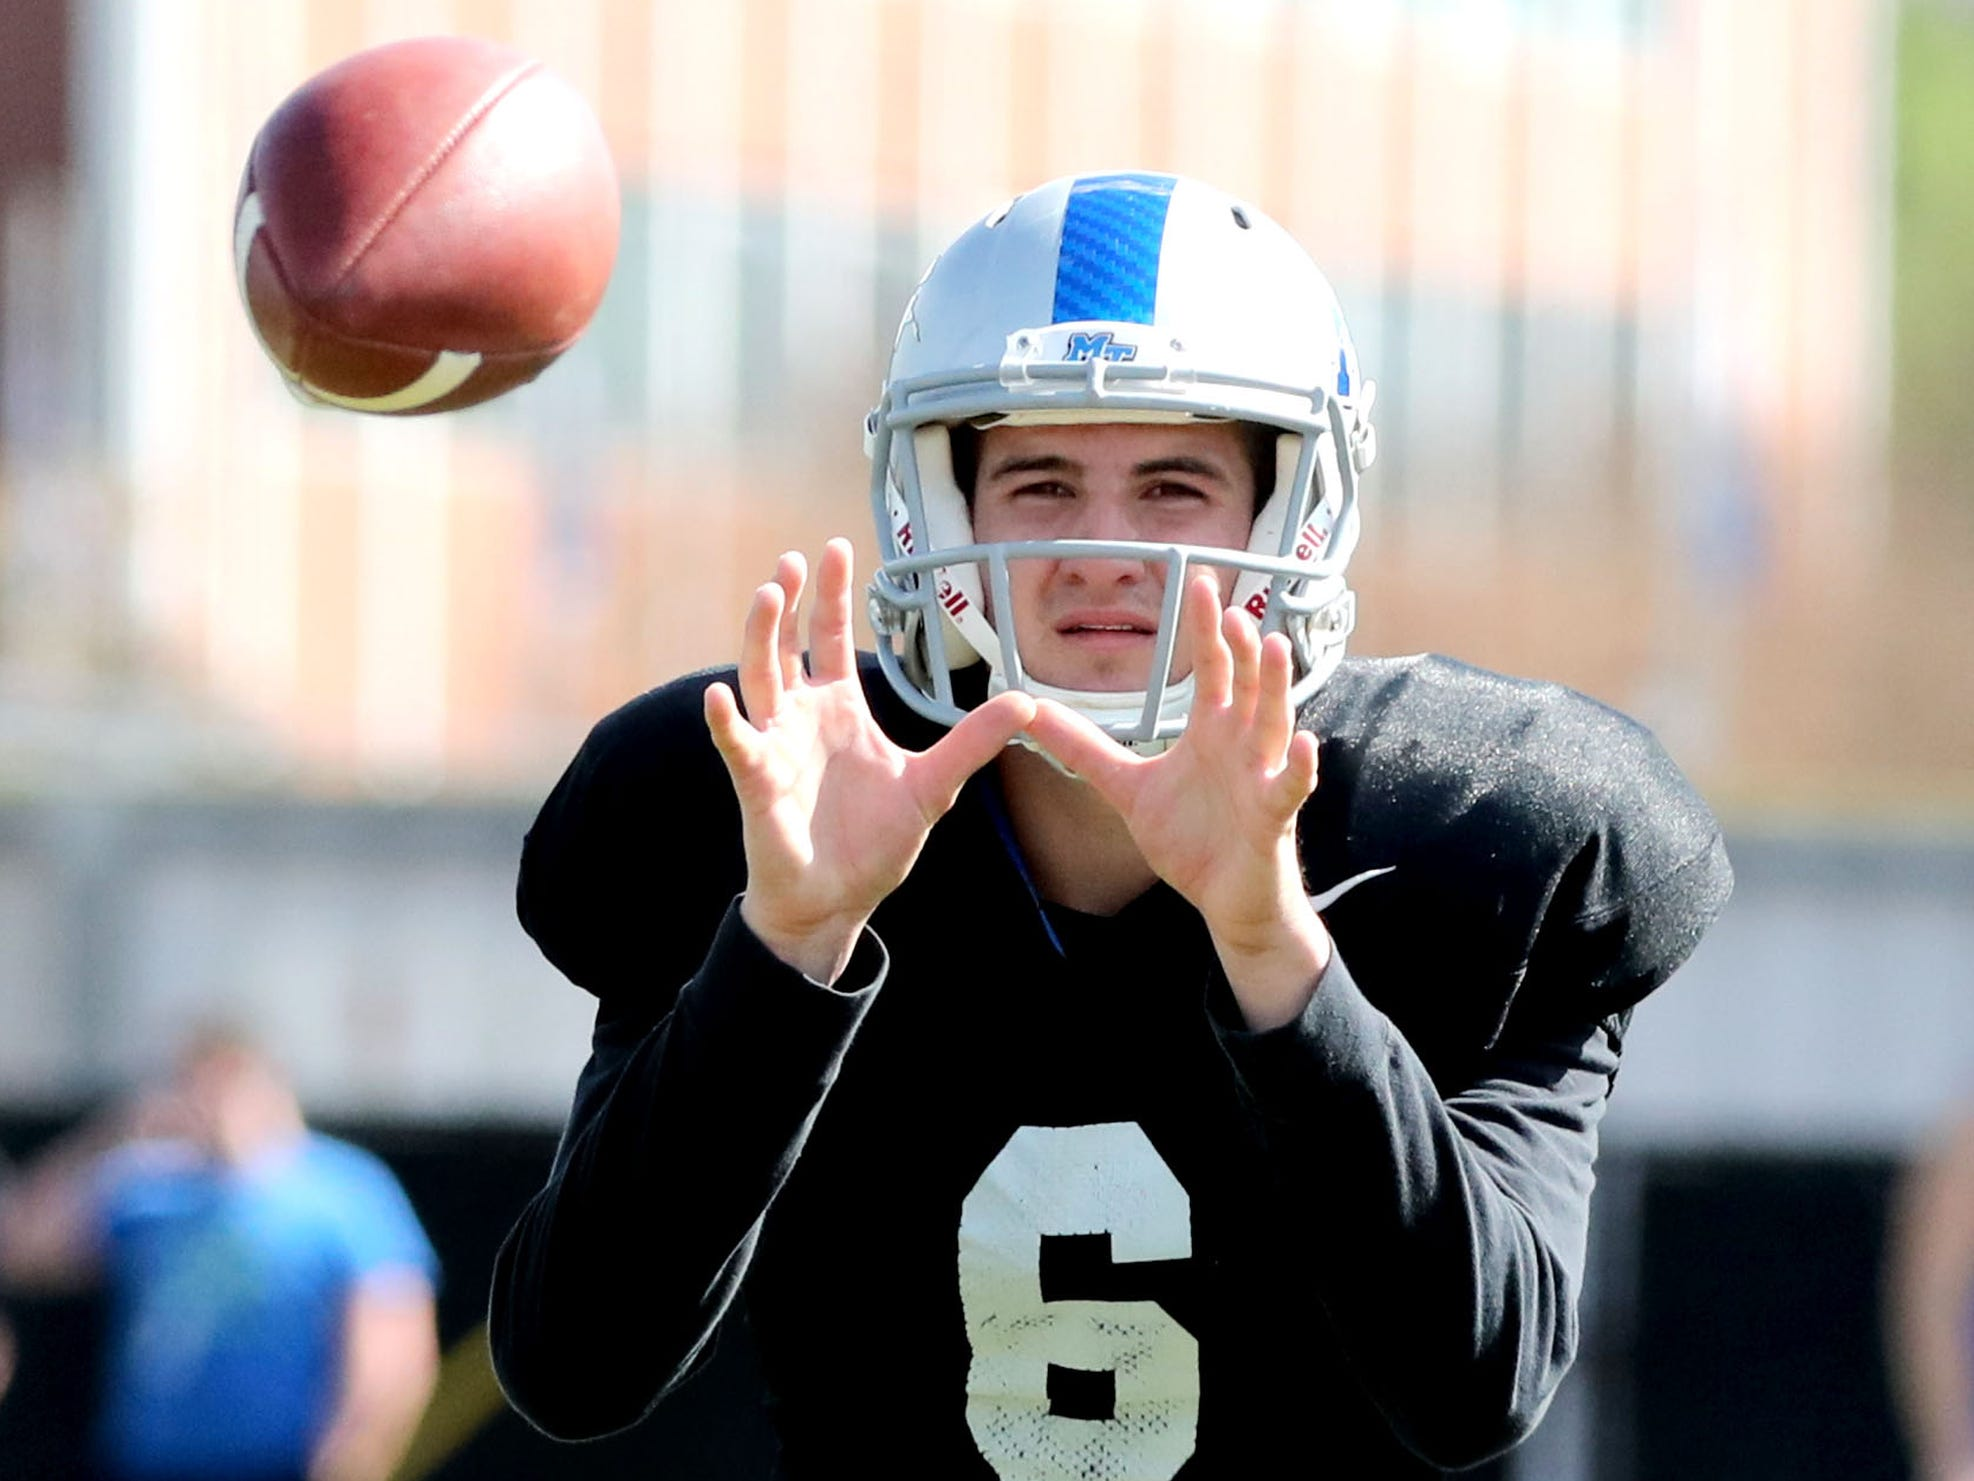 MTSU's quarterback Chance Nolan (6) waits for the snap to catch the ball and pass during MTSU's football practice, in Murfreesboro on Tuesday April 9, 2019.